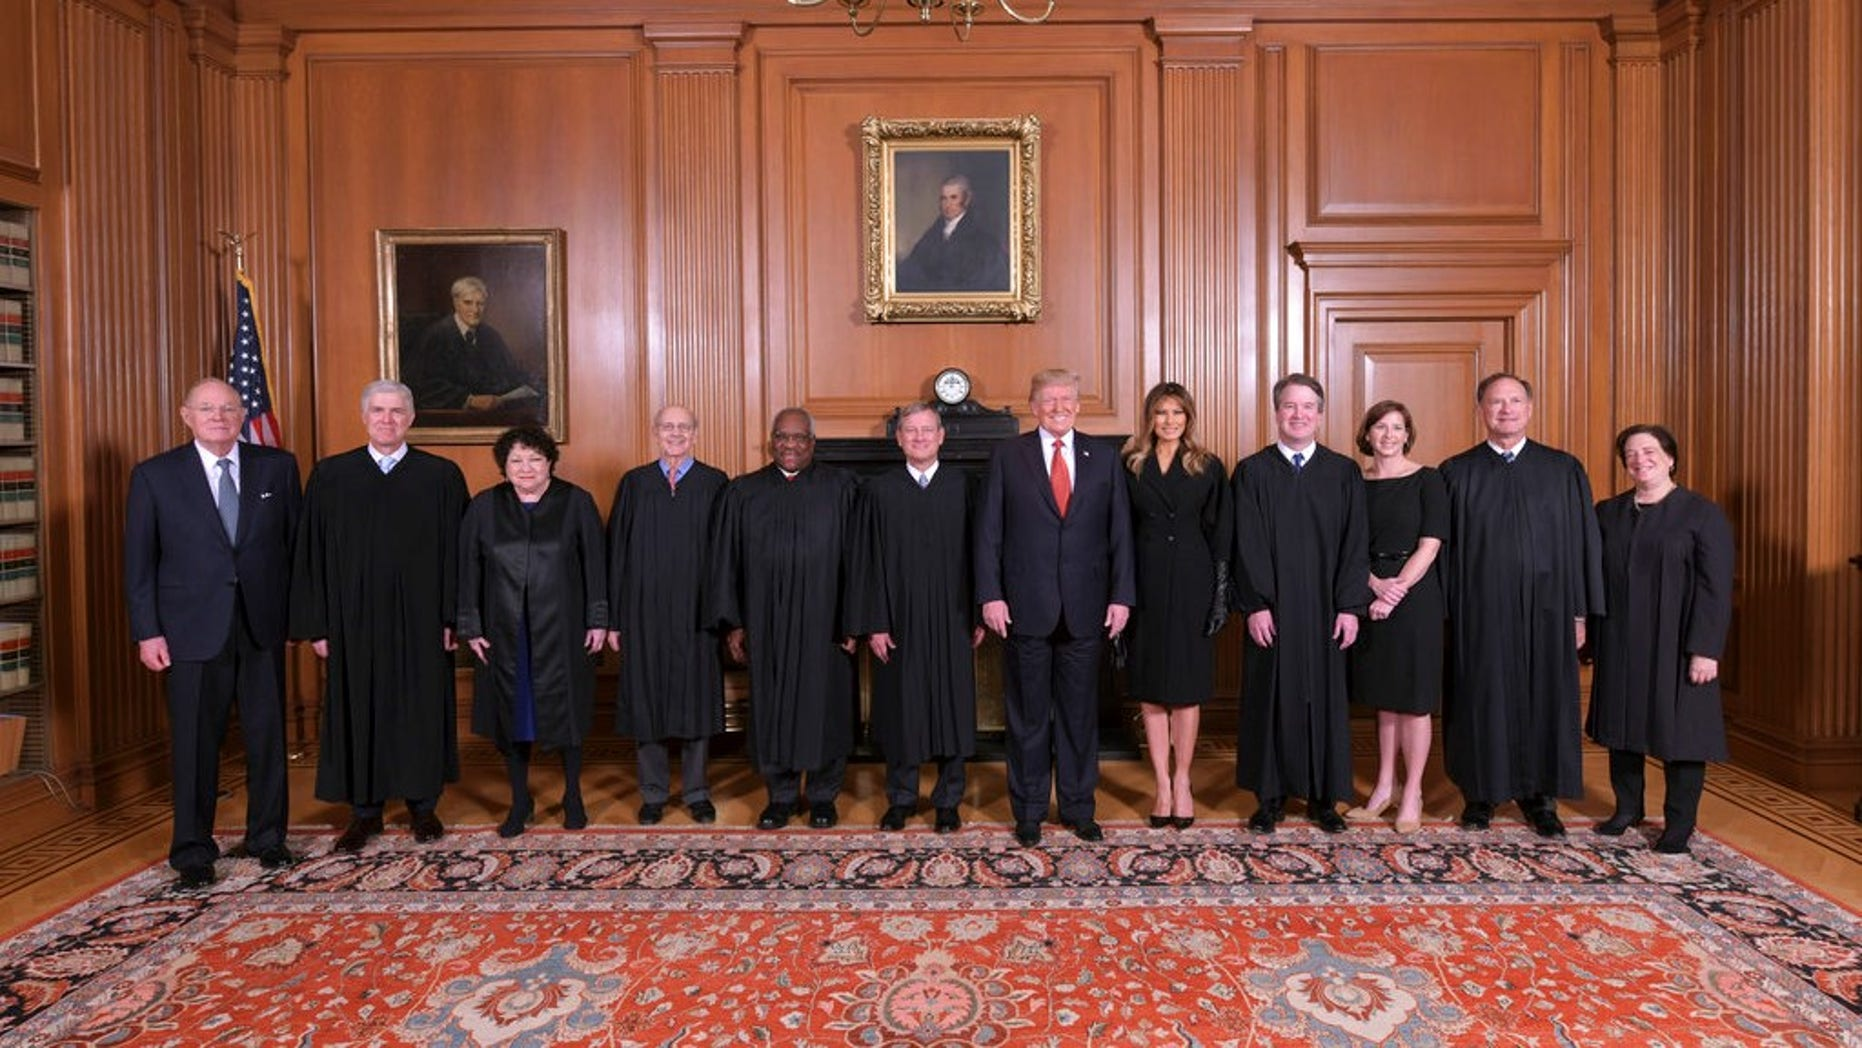 In this image provided by the Supreme Court, President Donald Trump poses for a photo with Associate Justice Brett Kavanaugh in the Justices' Conference Room before a investiture ceremony Thursday, Nov. 8, 2018, at the Supreme Court in Washington. From left are, retired Justice Anthony Kennedy, Associate Justices Neil Gorsuch, Sonia Sotomayor, Stephen Breyer, Clarence Thomas, Chief Justice John Roberts, Jr., President Donald Trump, first lady Melania Trump, Associate Justice Brett Kavanaugh, Ashley Kavanaugh, and Associate Justices Samuel Alito, Jr. and Elena Kagan.